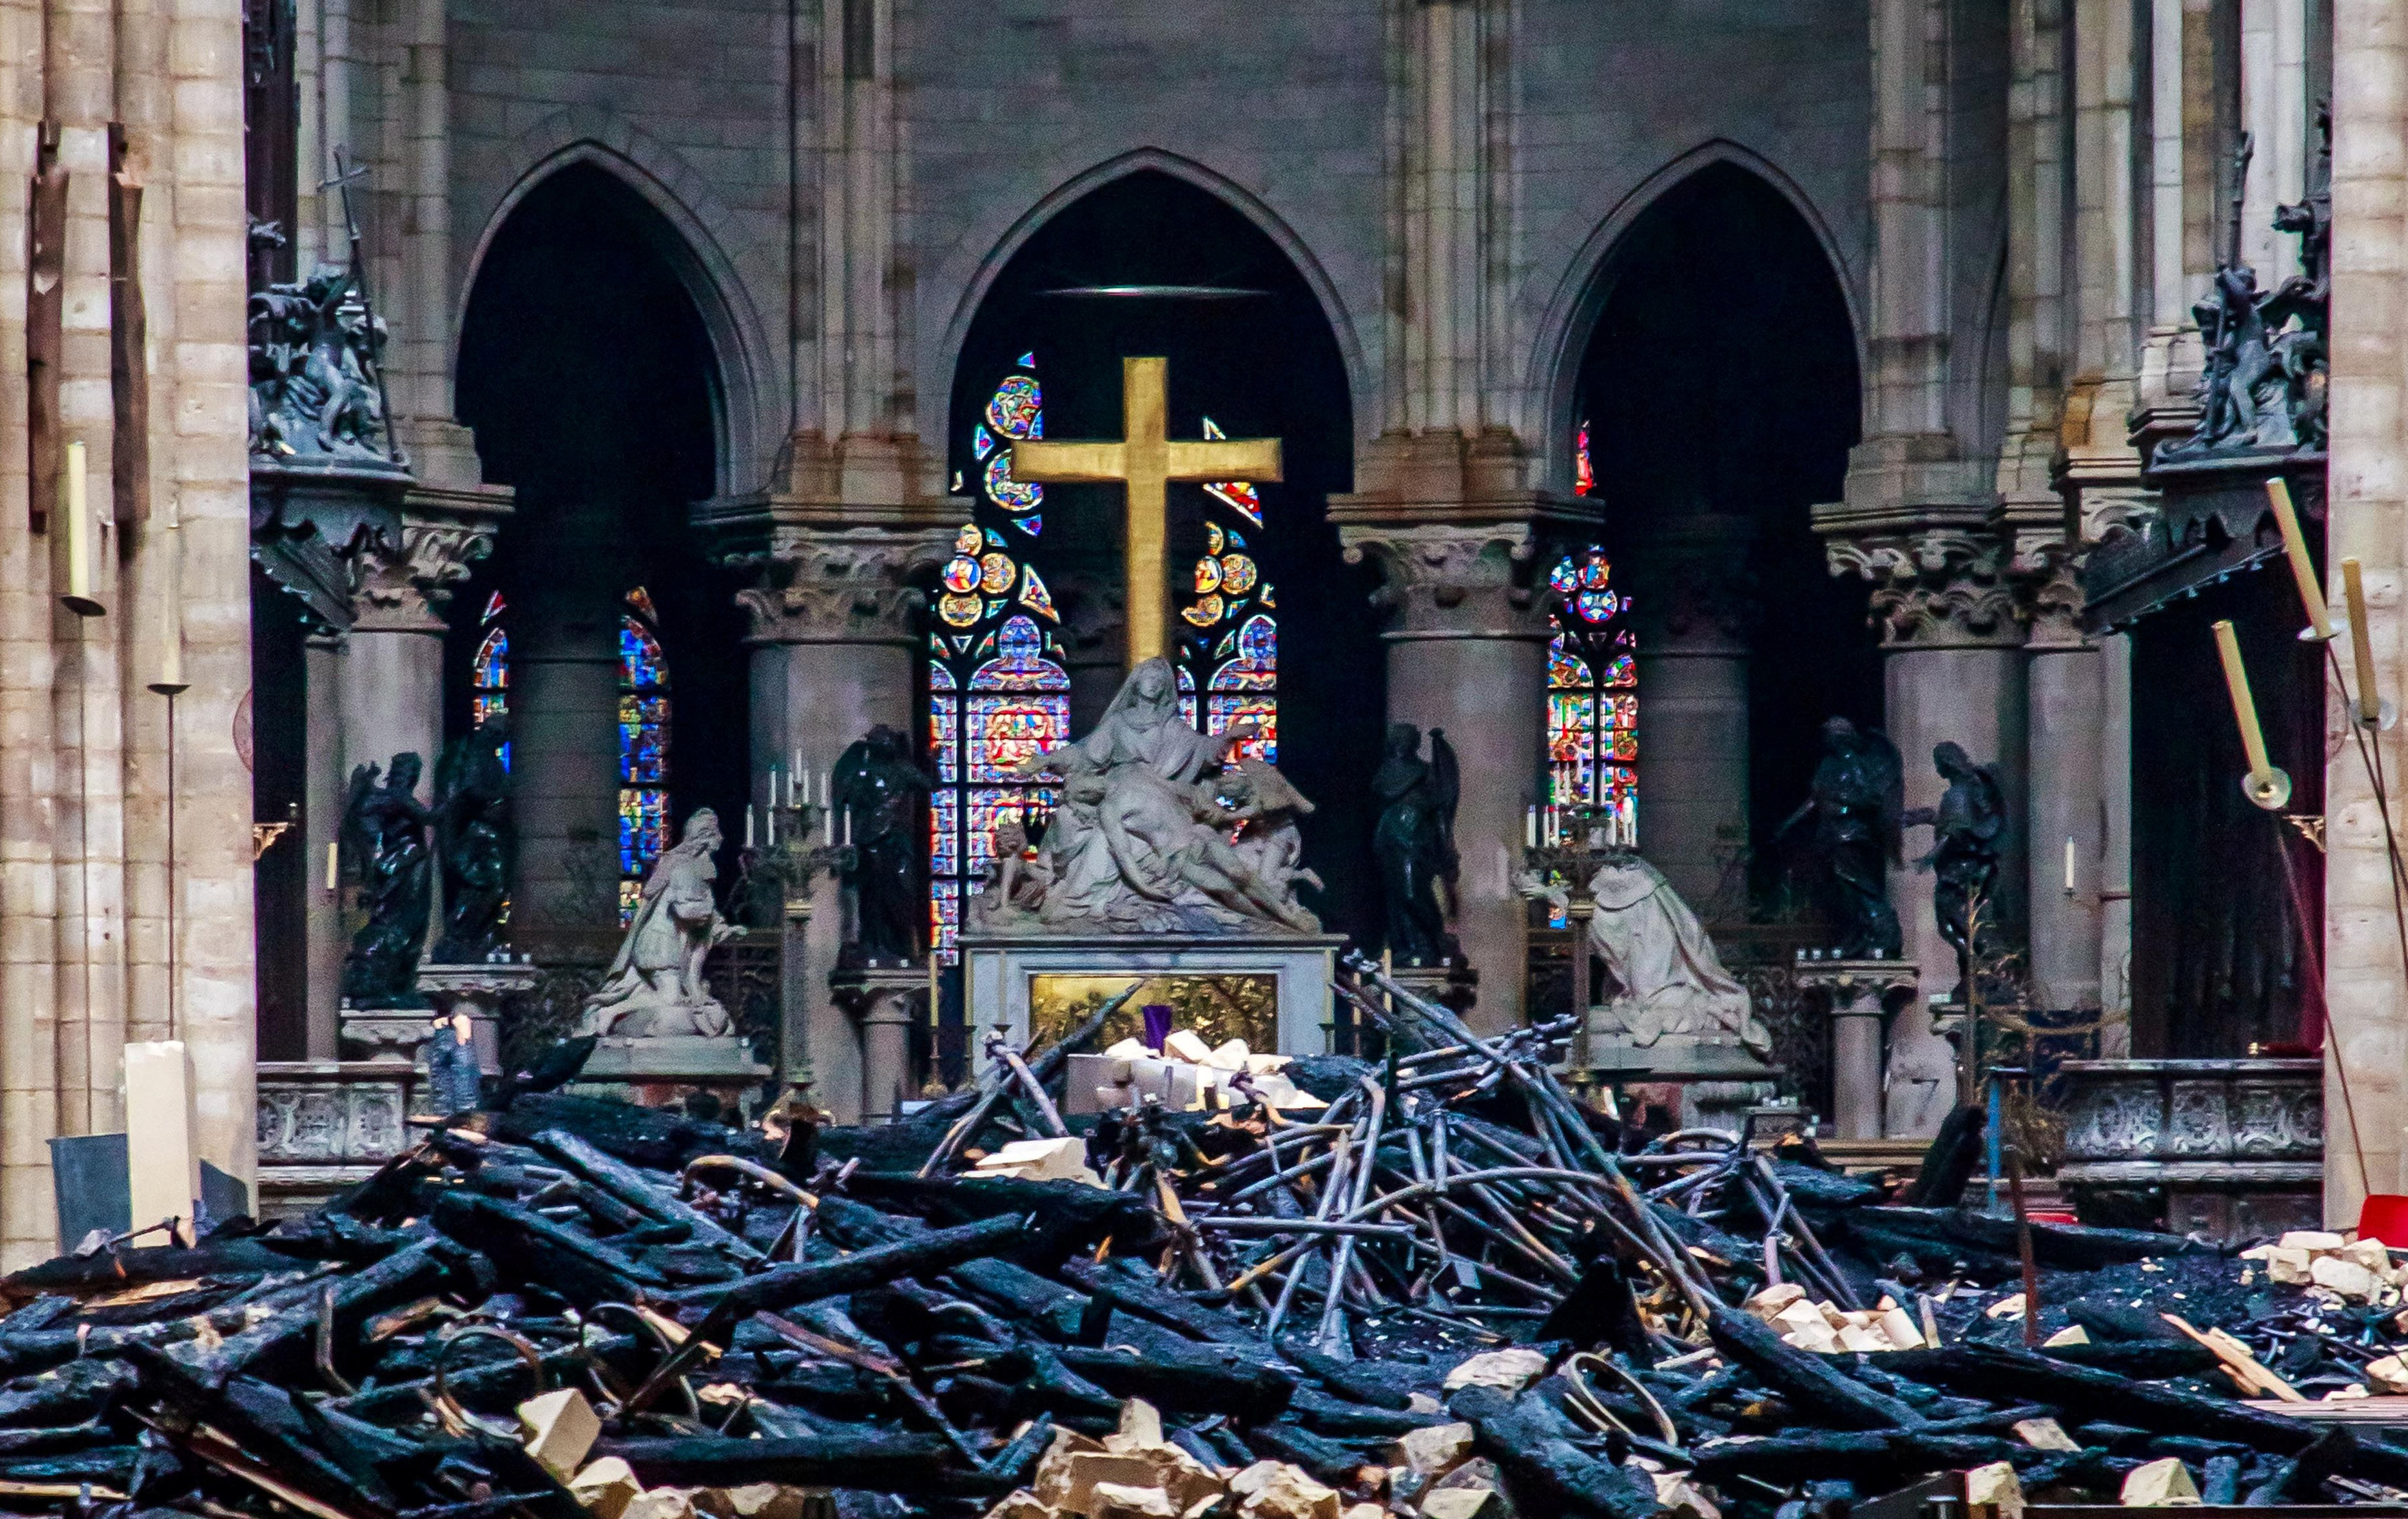 A view of the cross and sculpture of Pieta by Nicolas Coustou in the background of debris inside Notre-Dame de Paris, in the aftermath of a fire that devastated the cathedral, during the visit of French Interior Minister Christophe Castaner (not pictured) in Paris, France, April 16, 2019. Christophe Petit Tesson/Pool via REUTERS